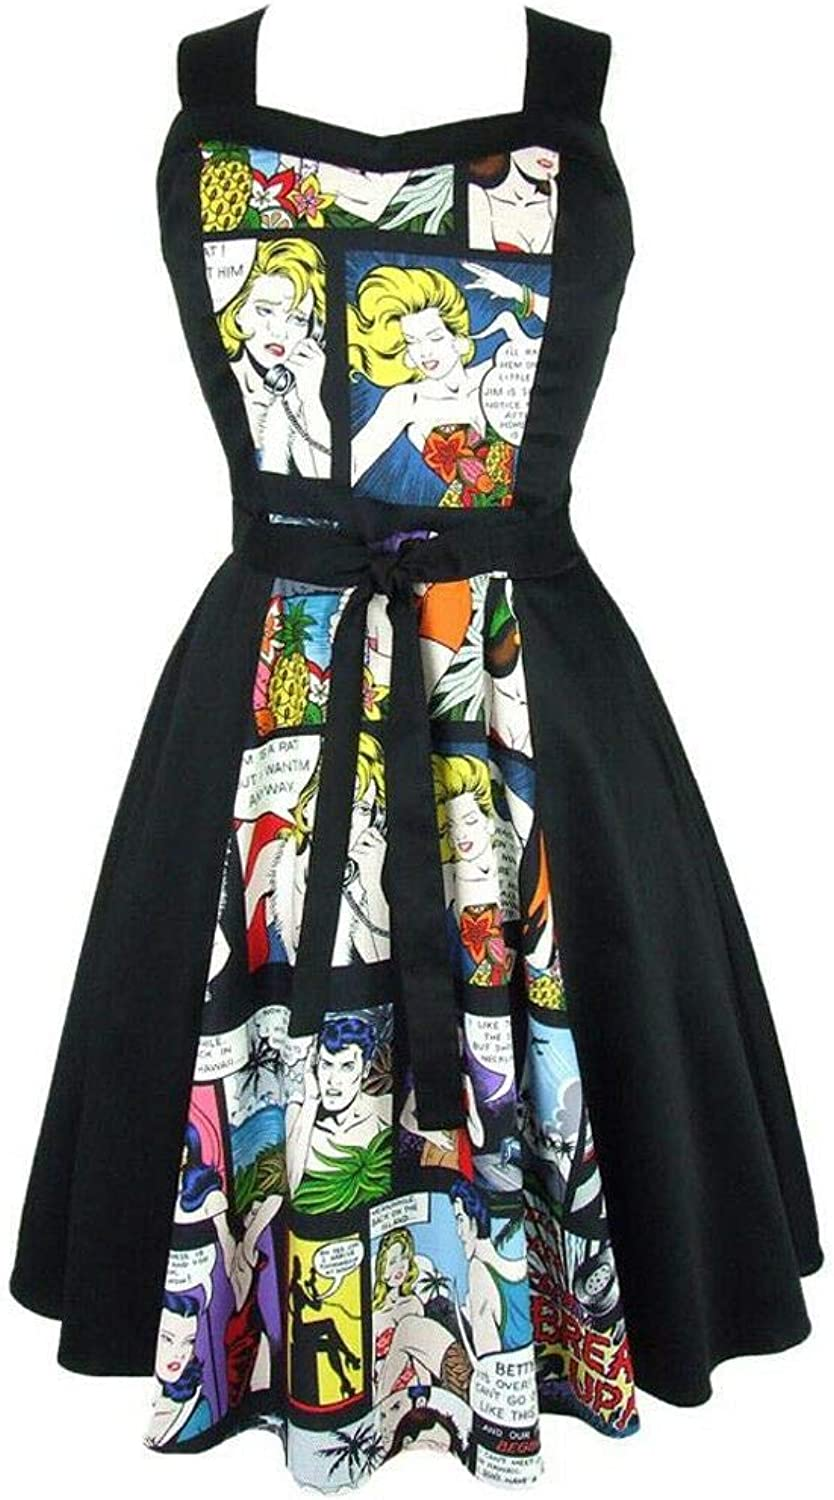 Hemet Women's Pinup Comic Black Full Circle Dress